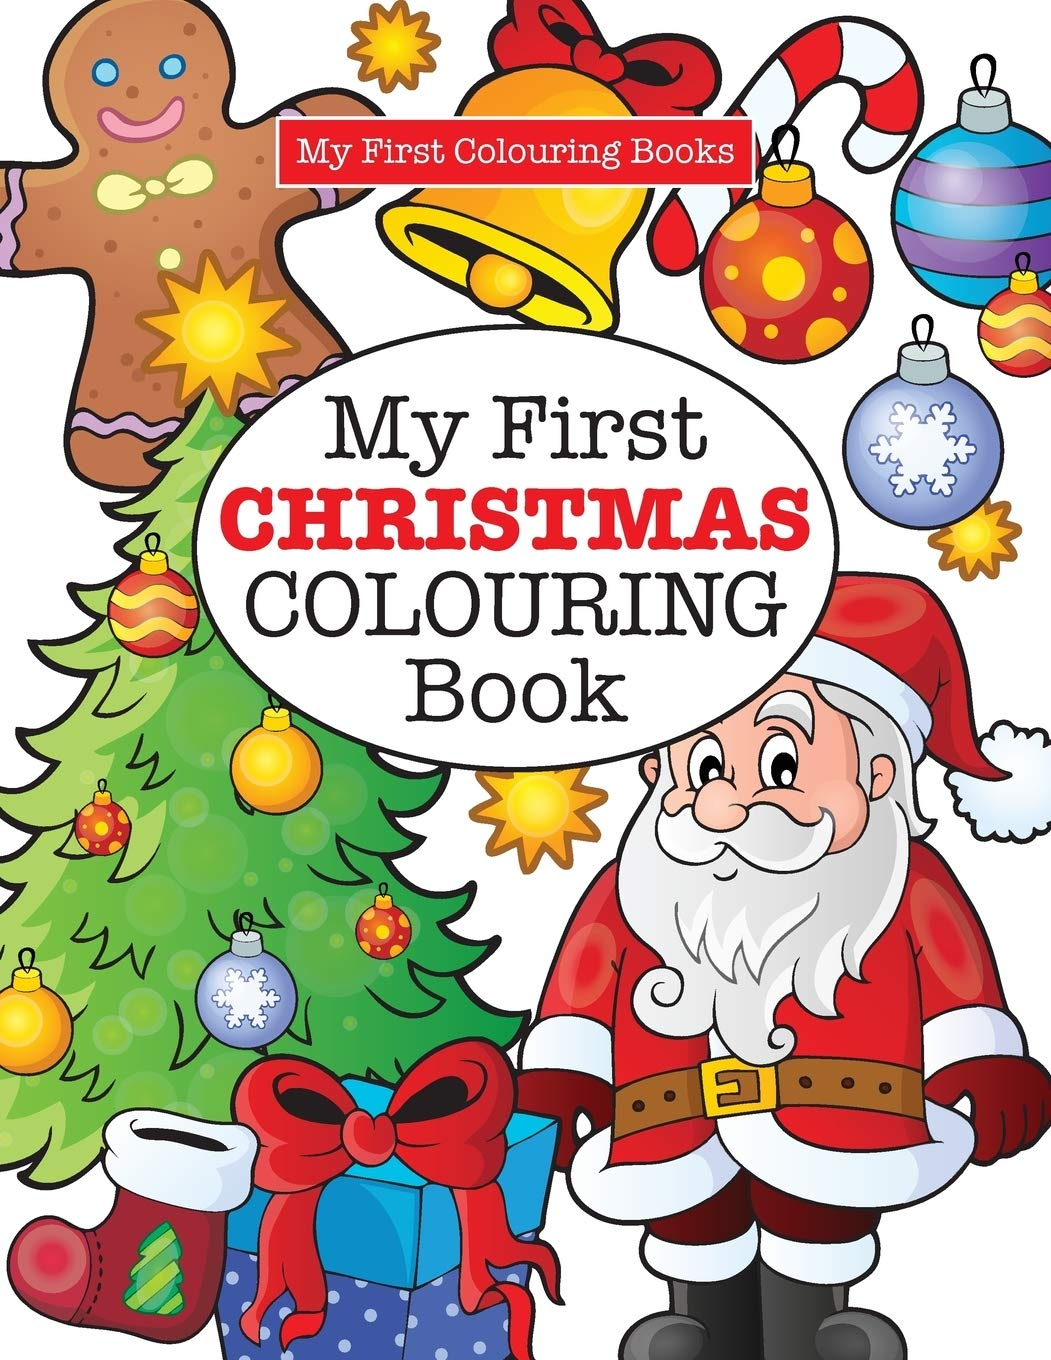 My First Christmas Colouring Book Crazy Colouring For Kids James Elizabeth 9781785951459 Amazon Com Books